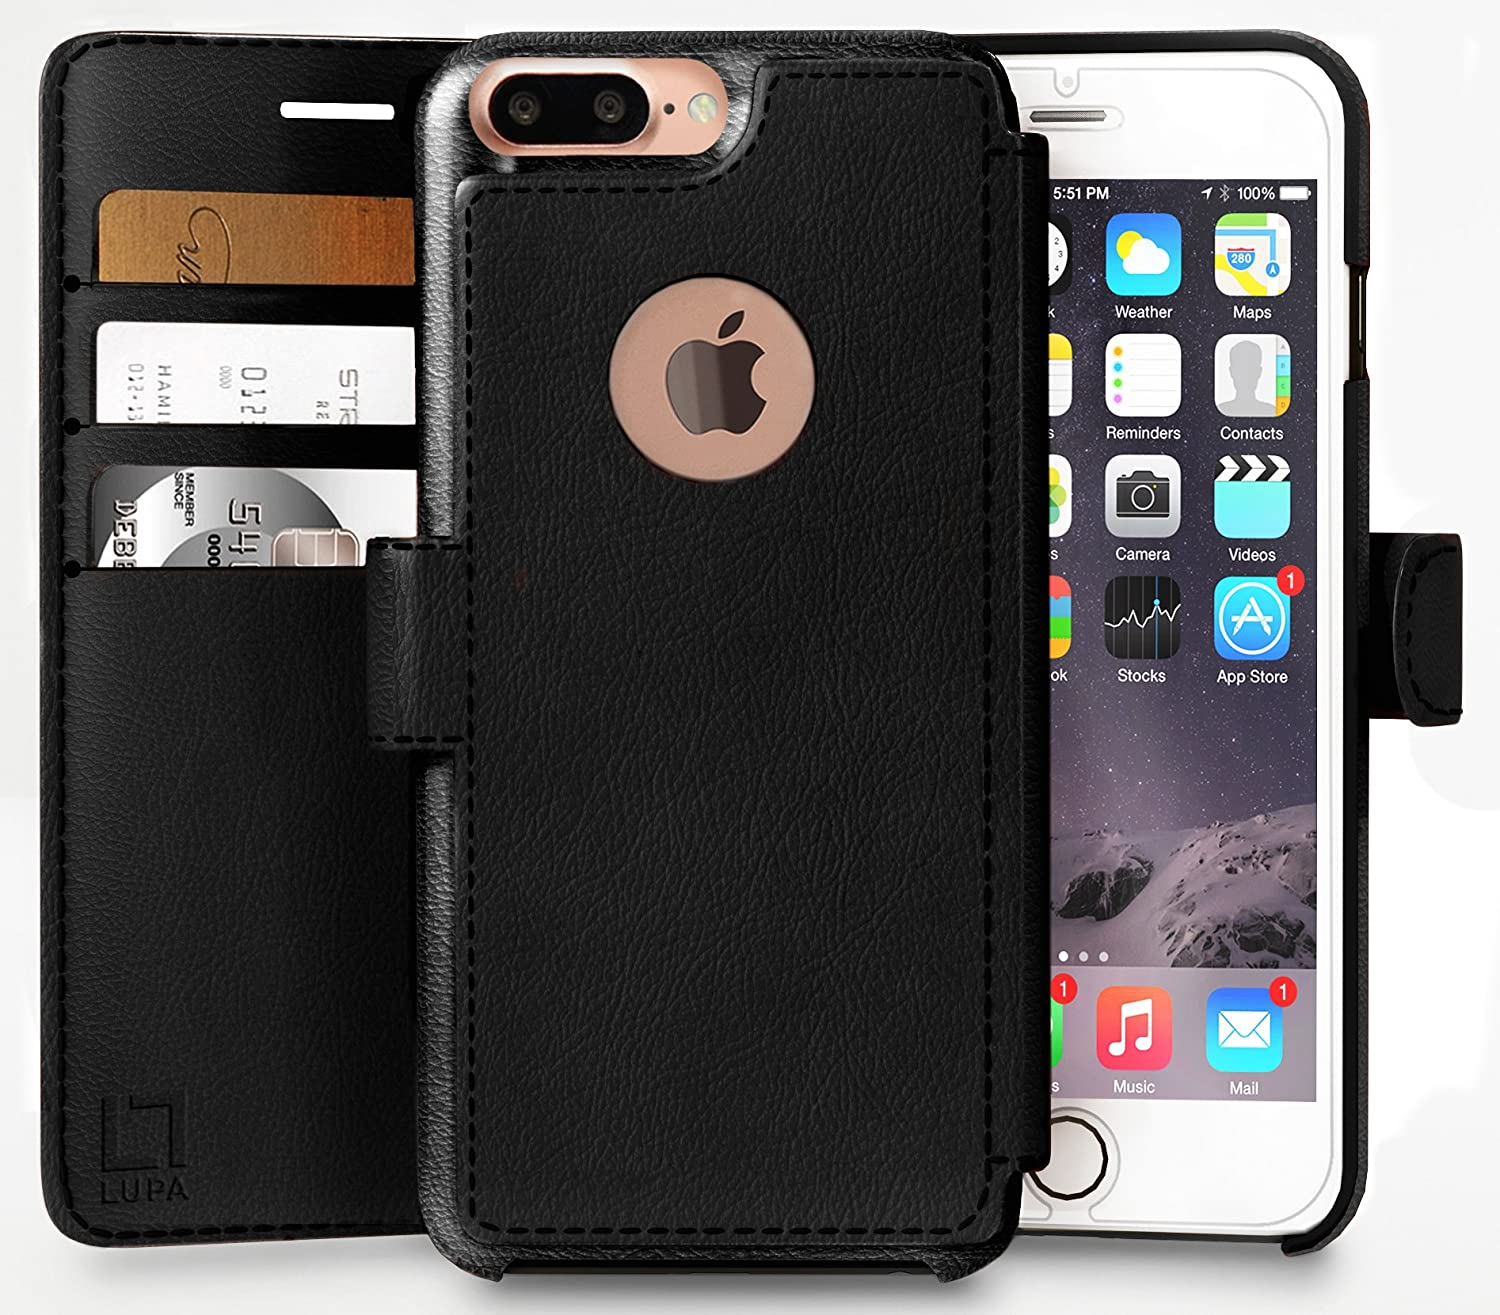 LUPA Wallet case for iPhone 7 Plus, Durable and Slim, Lightweight, Magnetic Closure, Faux Leather, Black